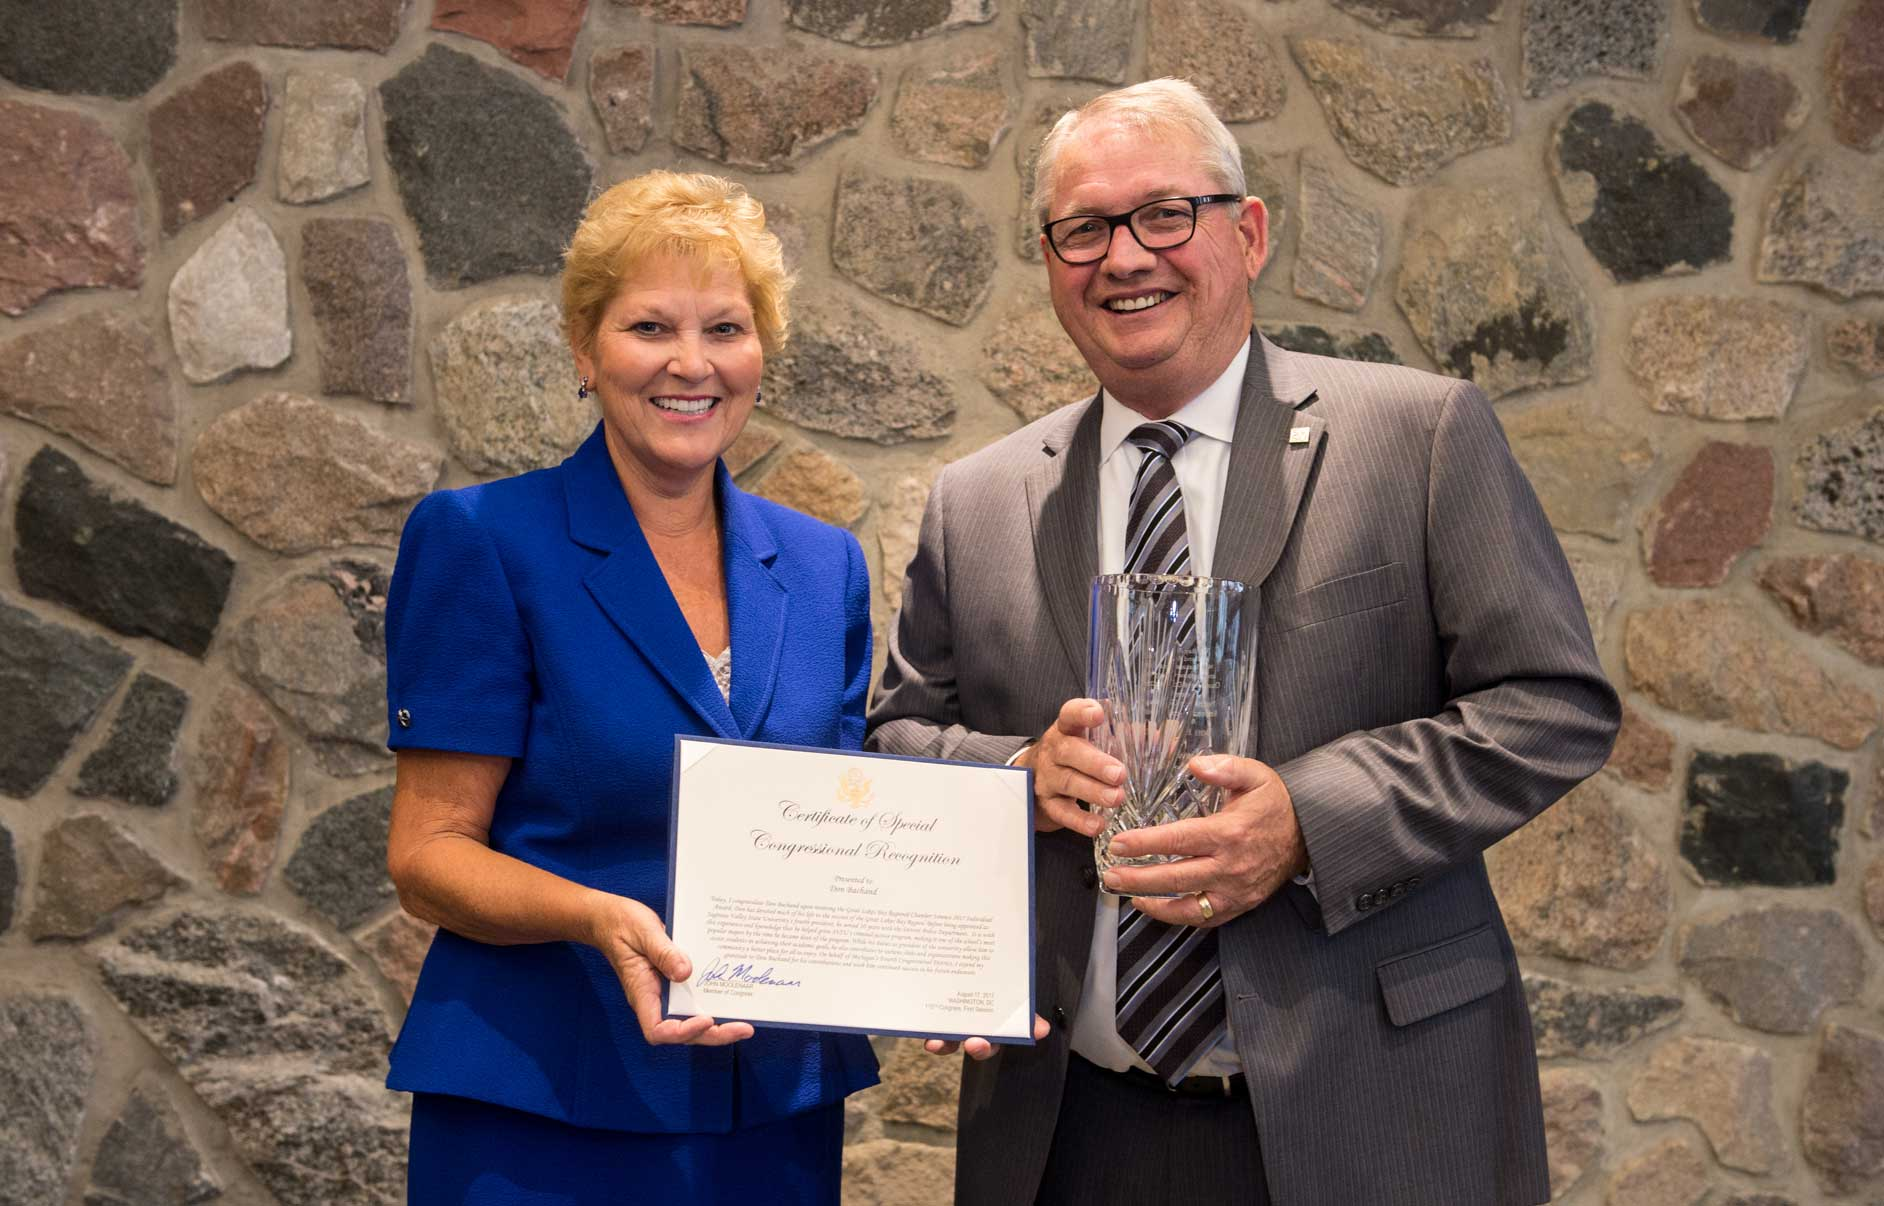 GLBR Regional Summit 2017: SVSU received award Don Bachand is pitured with Dr. Diane Postler-Slattery, president and CEO of MidMichigan Health.